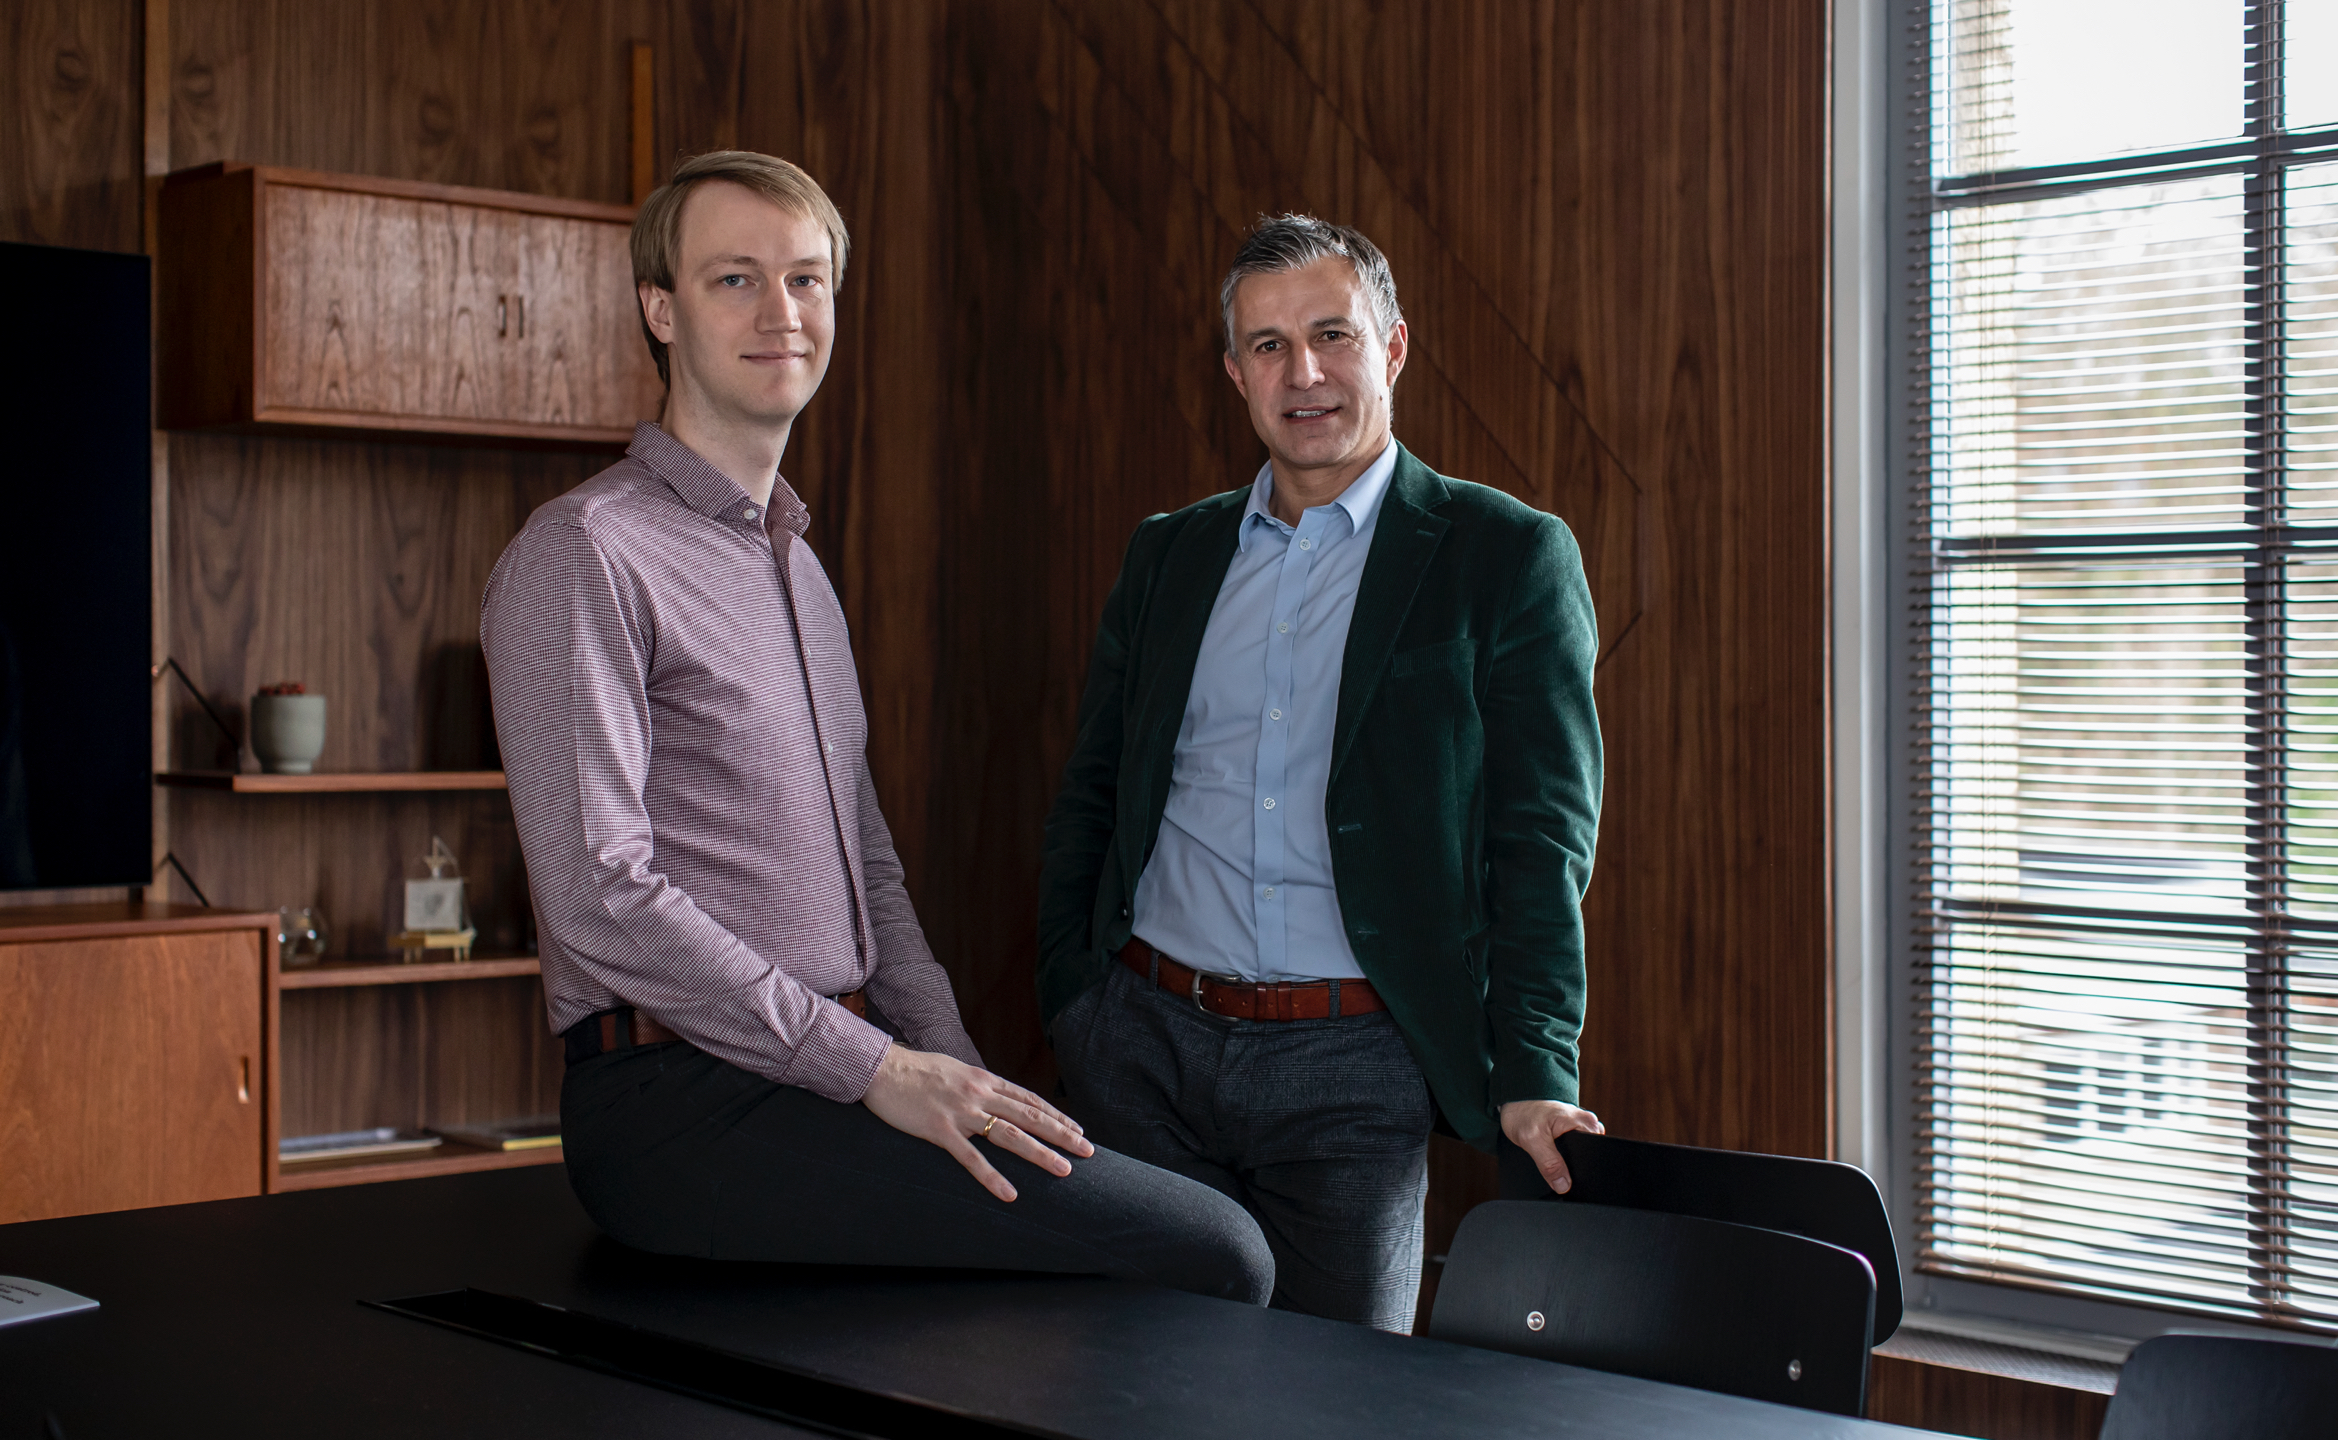 InvestSuite raises €3 million bringing the total amount of funding to €9 million